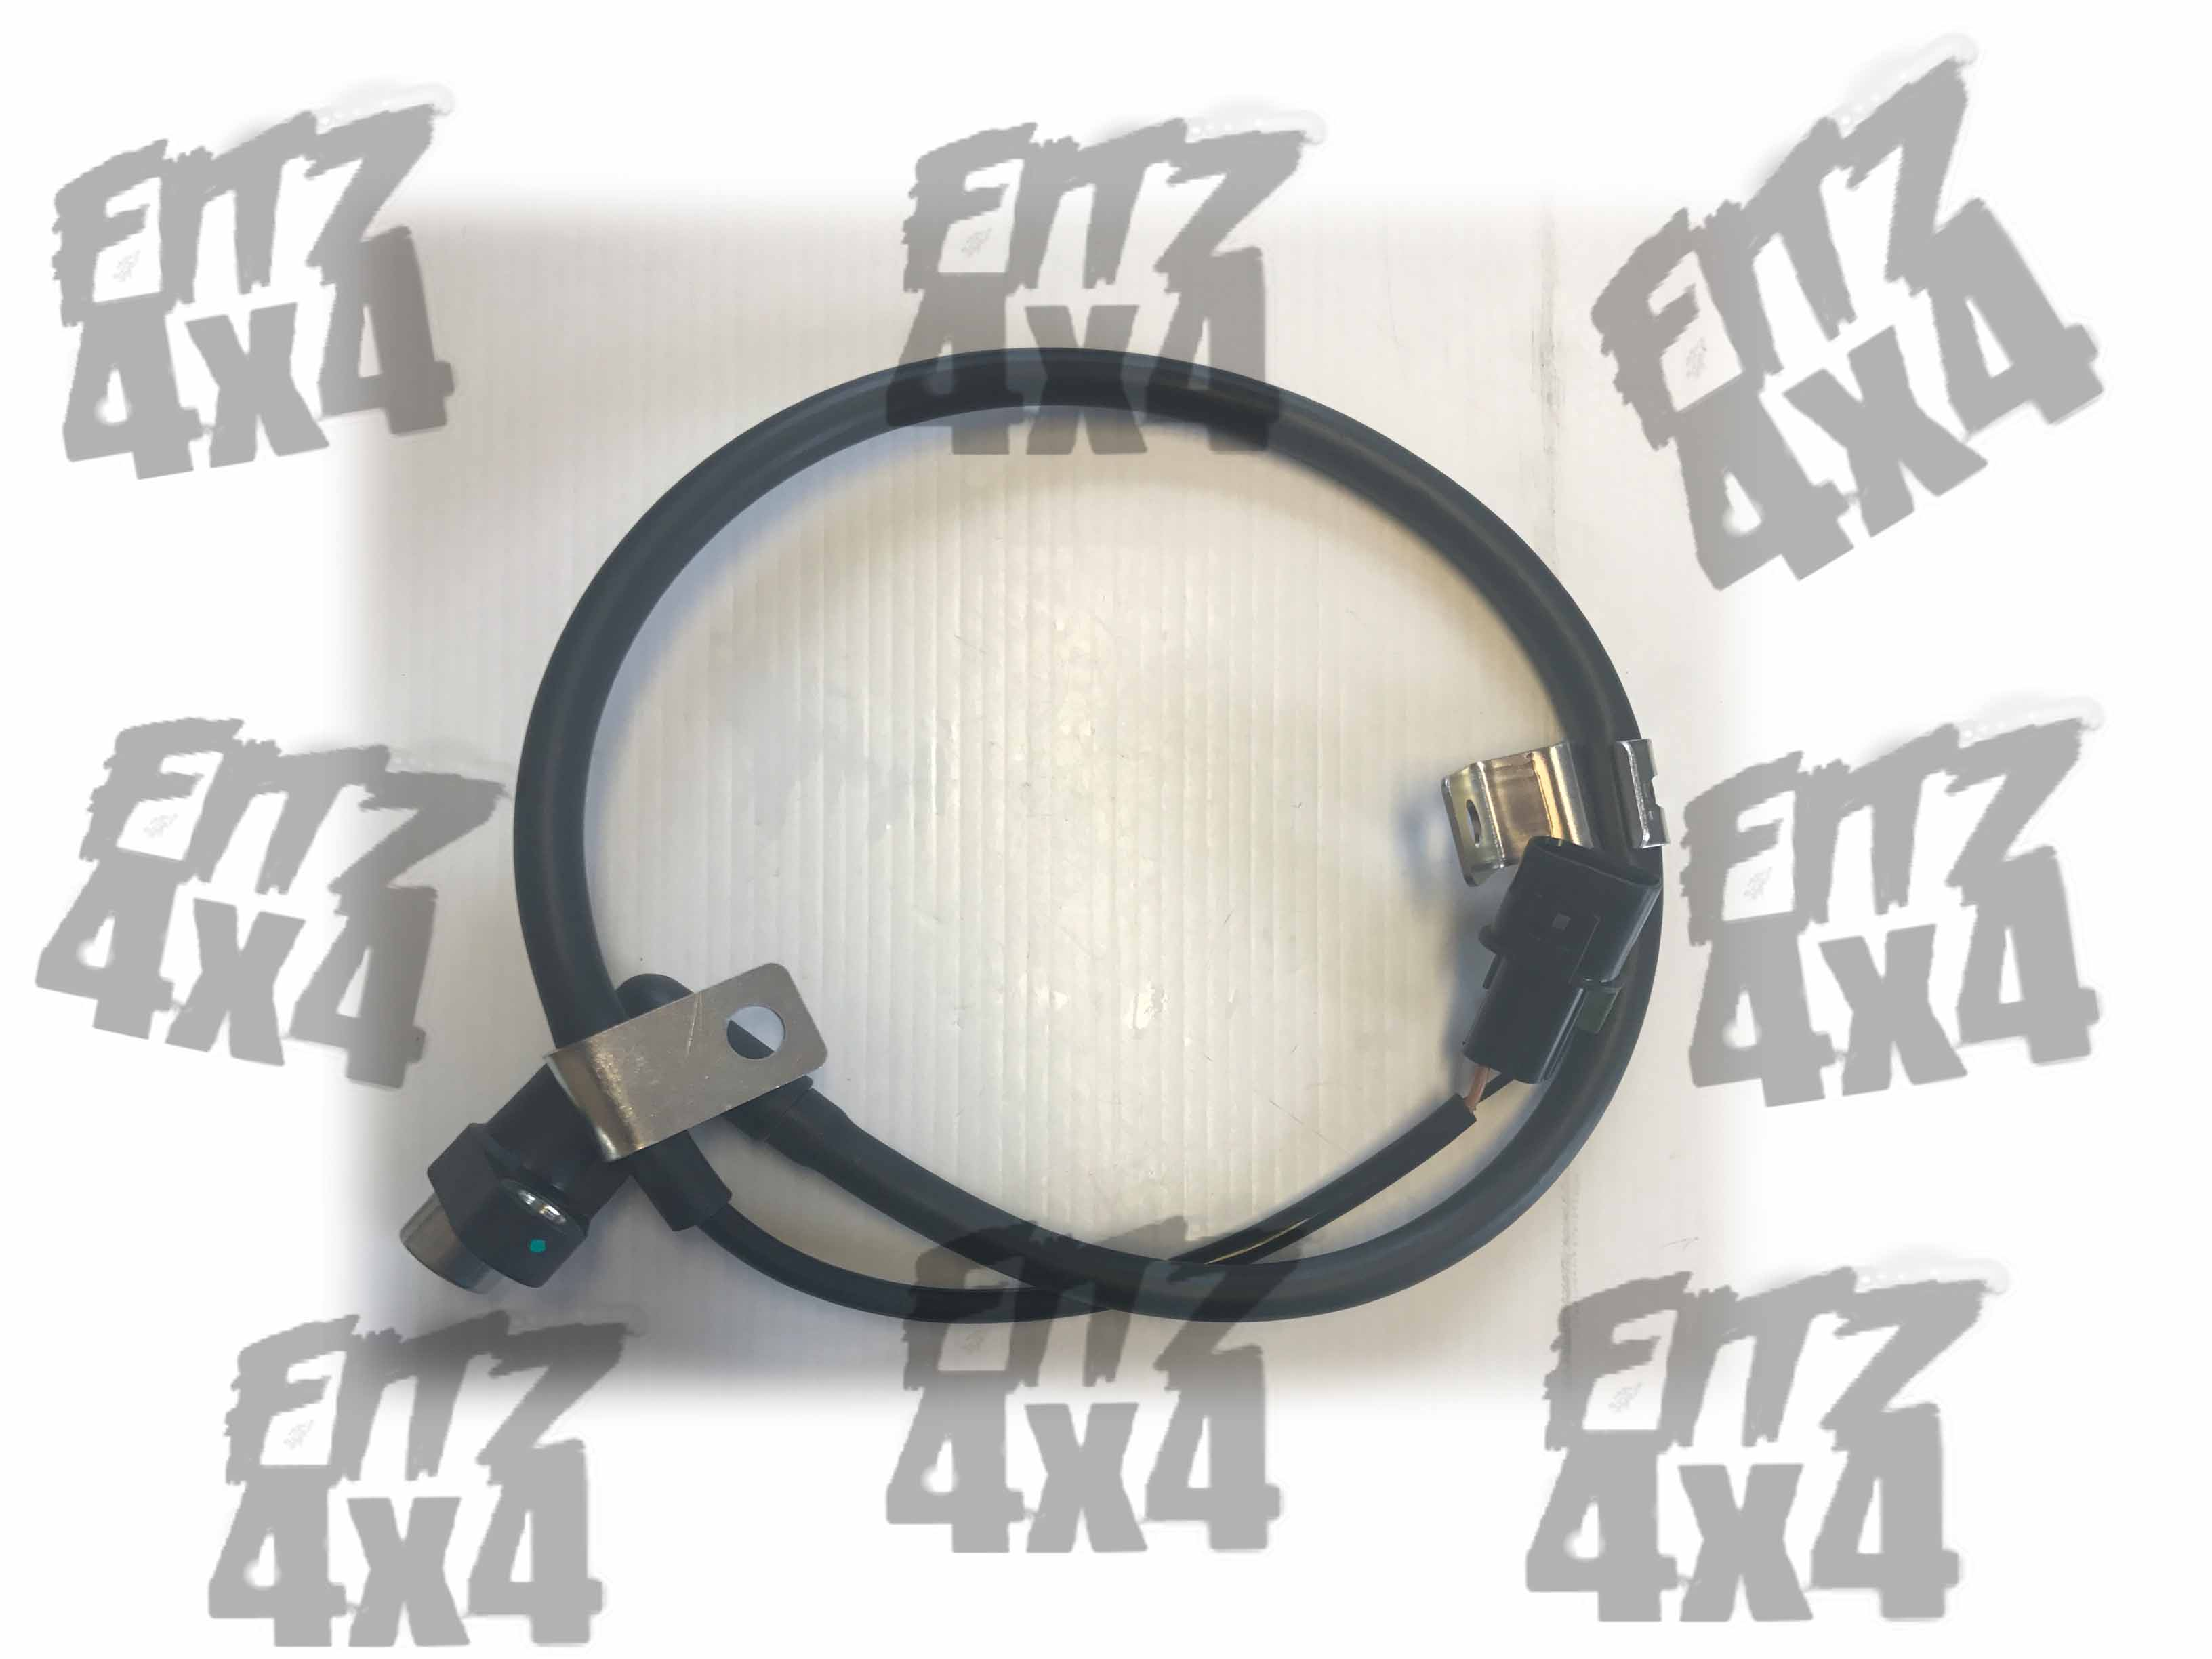 Mitsubishi L200 Rear Left ABS Sensor